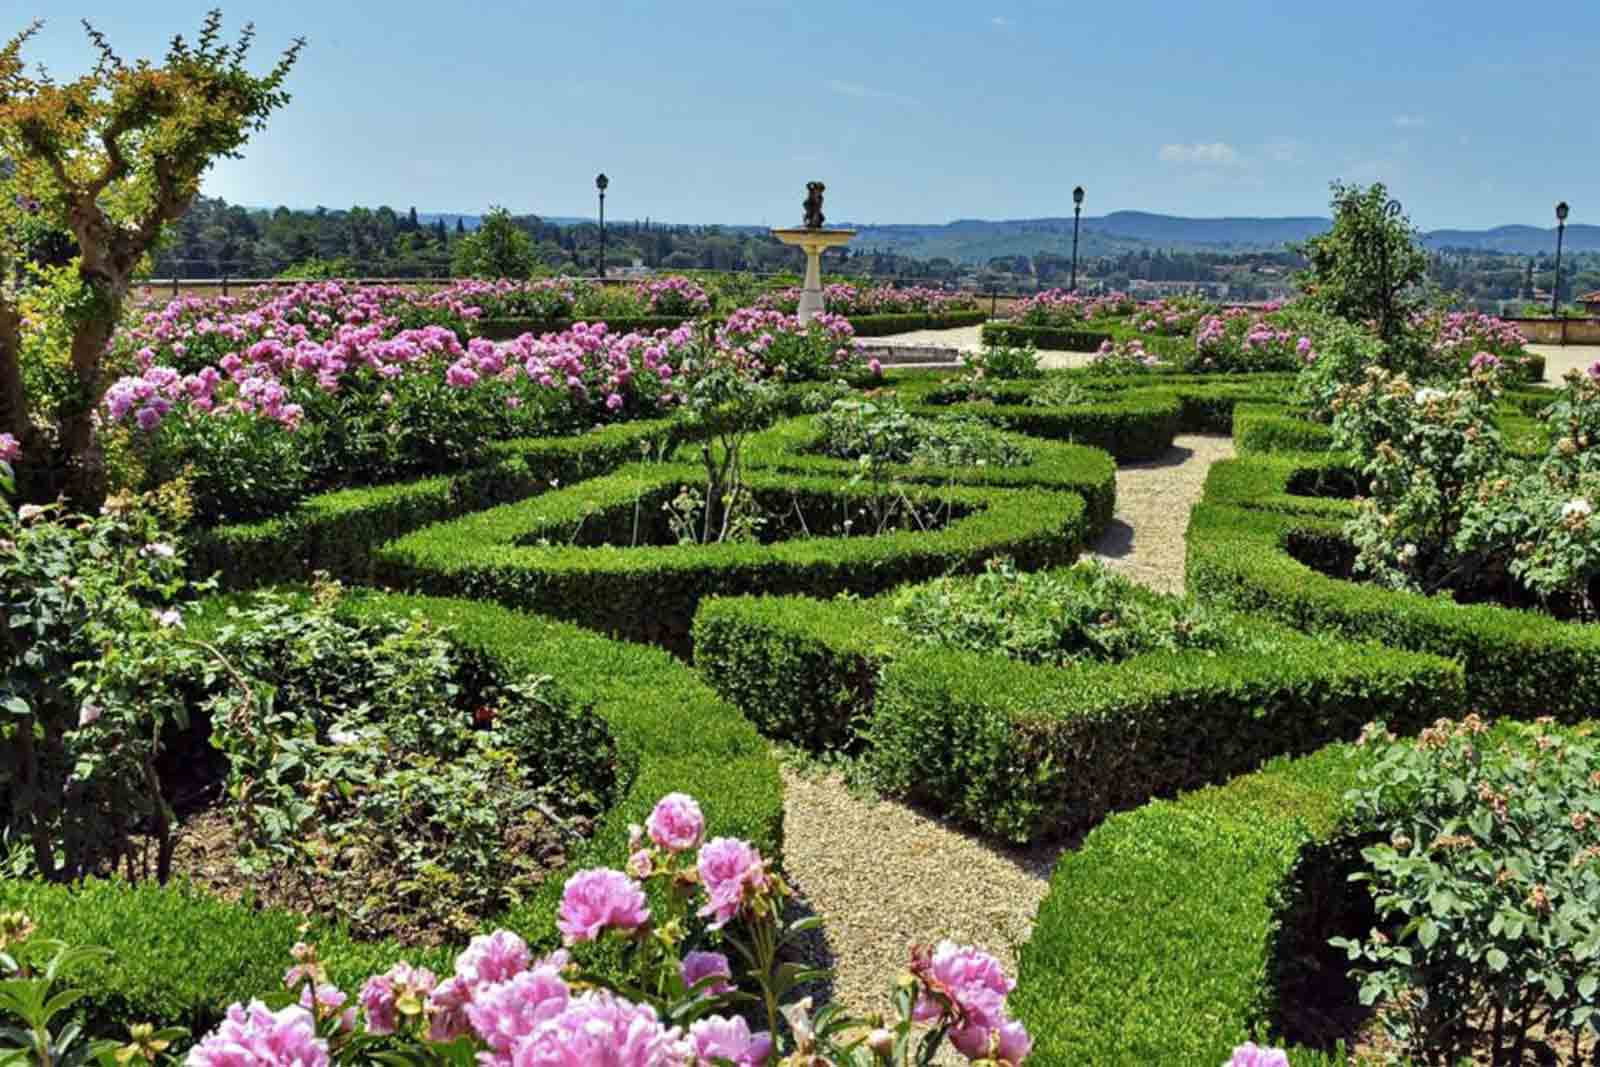 The magical Italian labyrinths and gardens 10-day